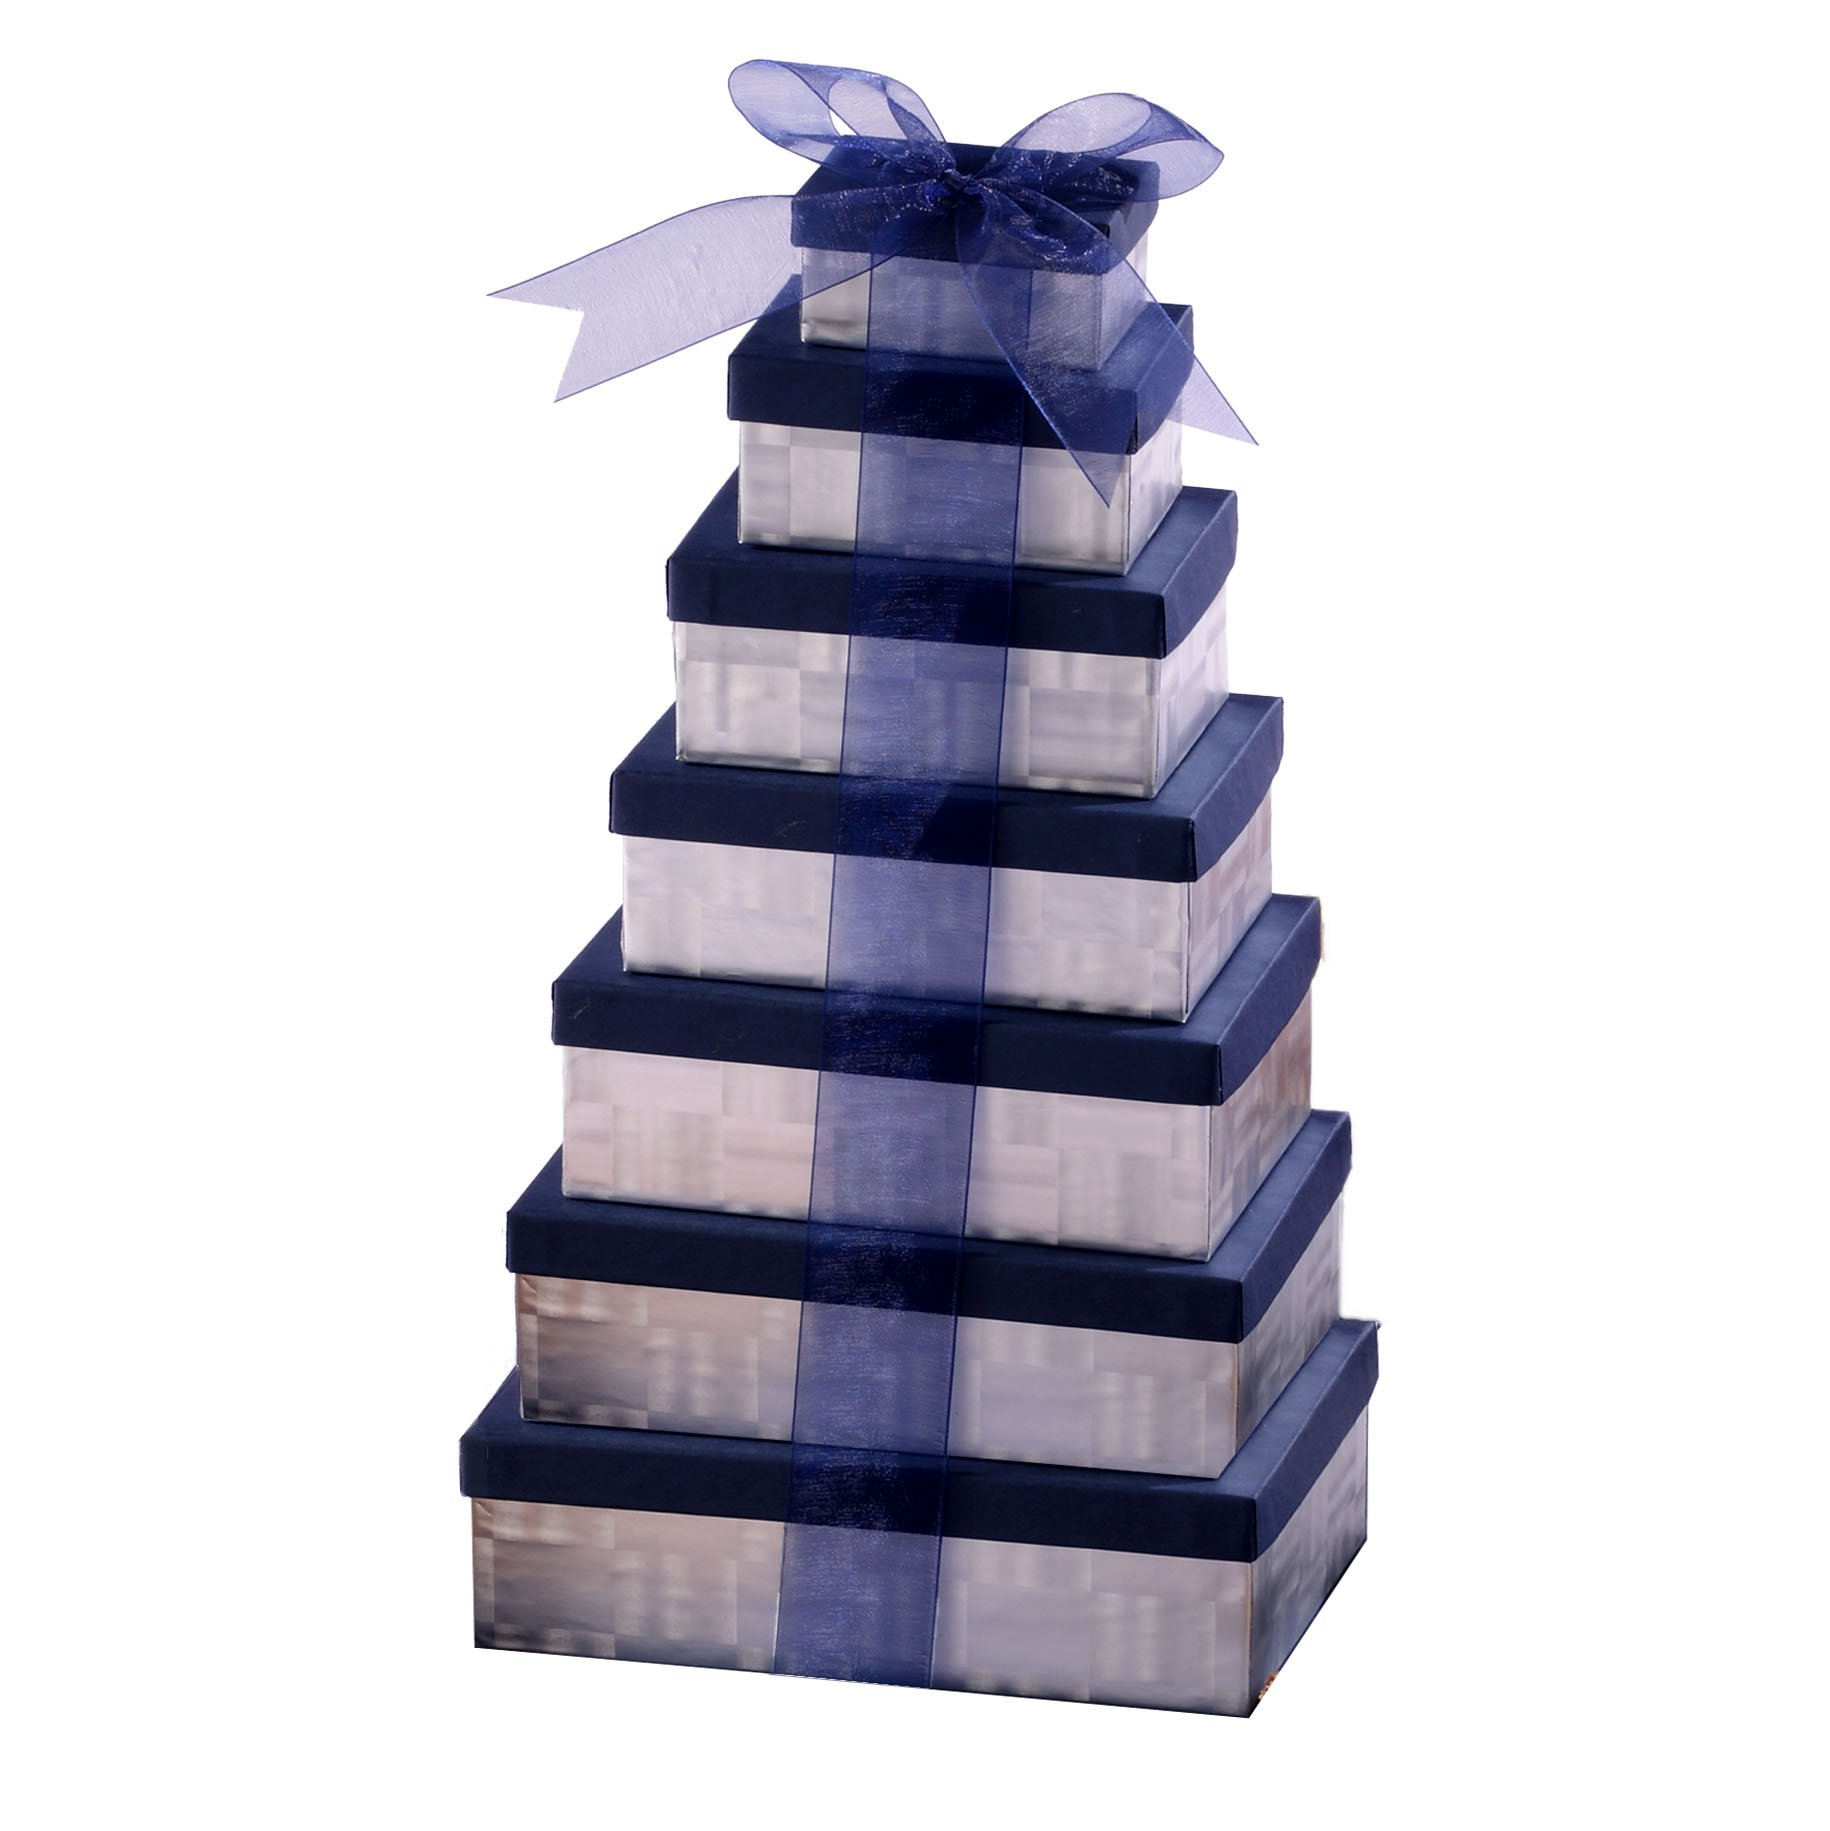 Broadway Basketeers Supreme Birthday Celebration Gift Tower by Broadway Basketeers (Image #2)